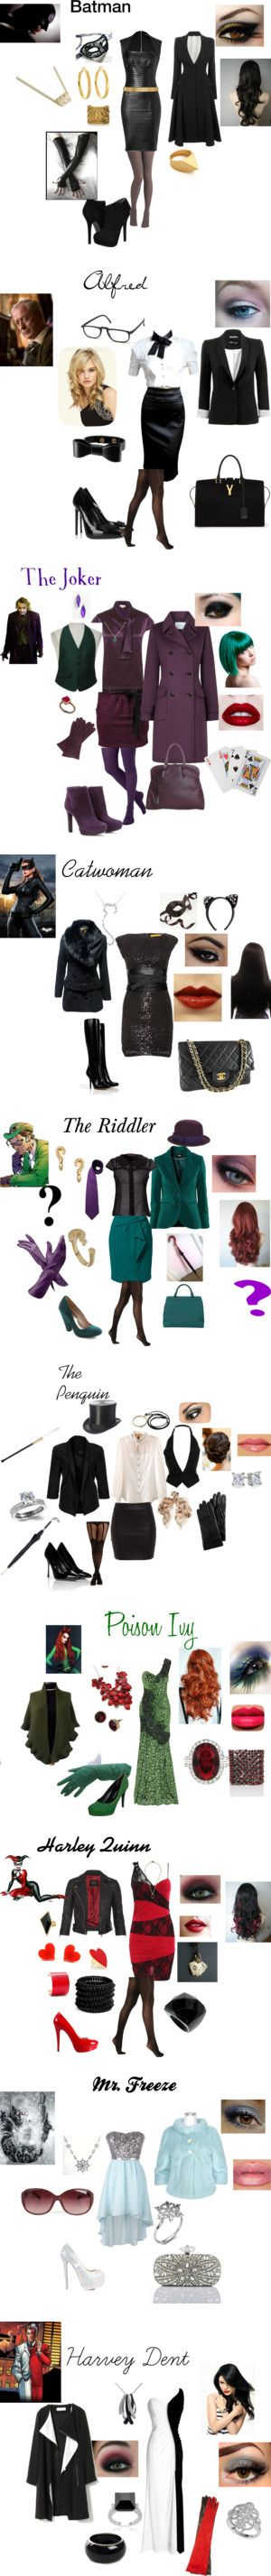 """Batman"" by nchavez113 on Polyvore"